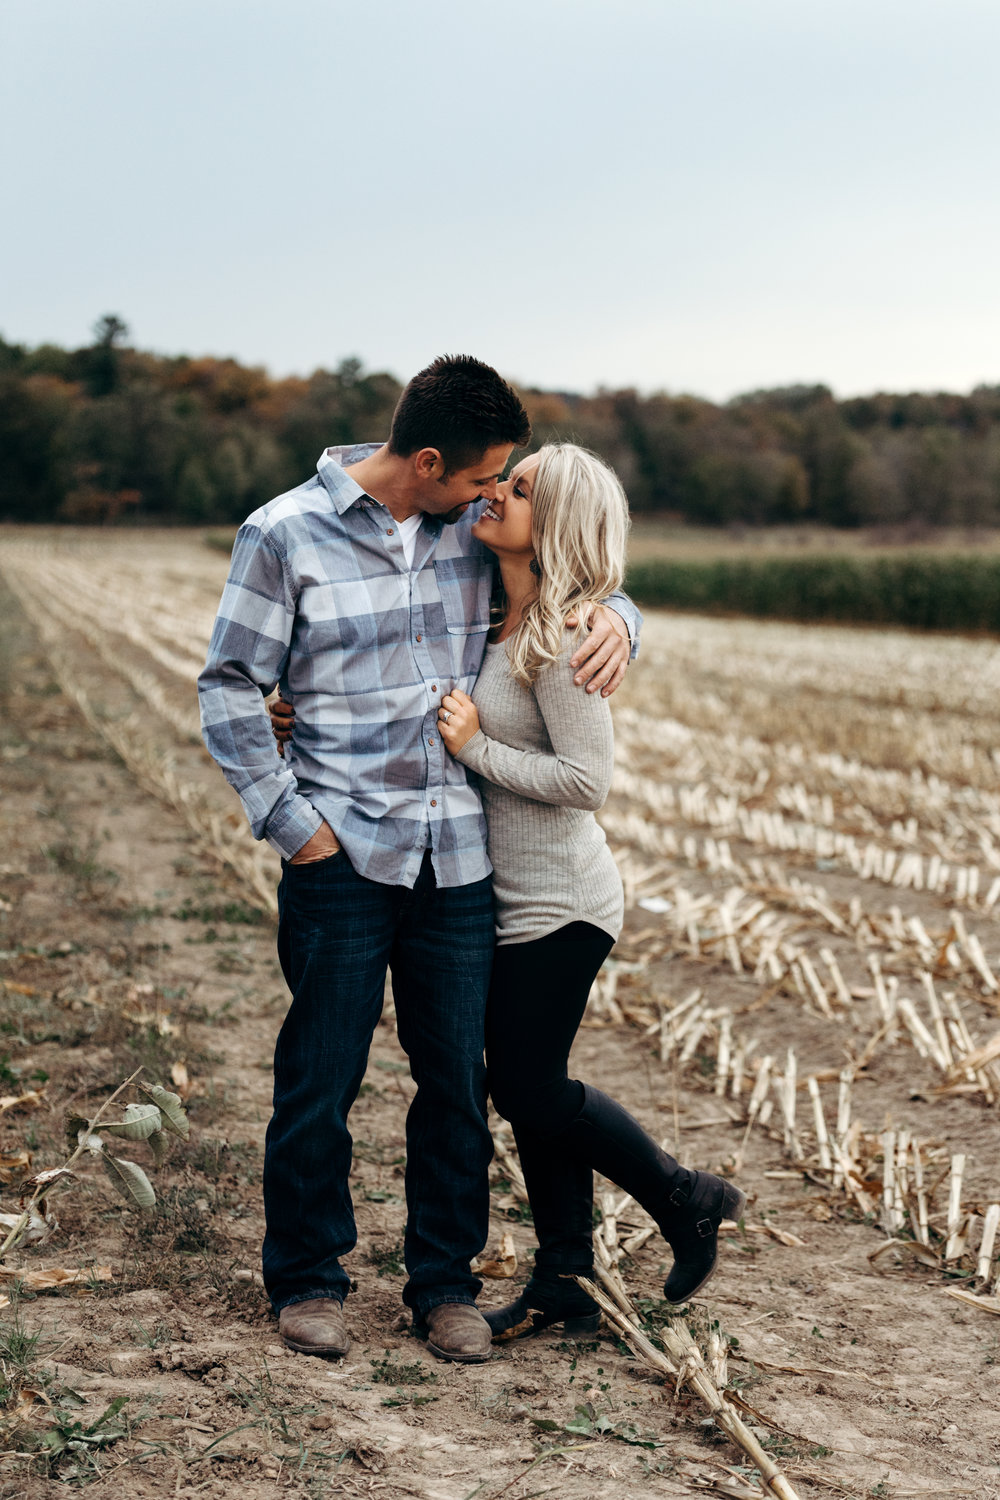 Engaged couple looks into each other's eyes in a harvested cornfield.